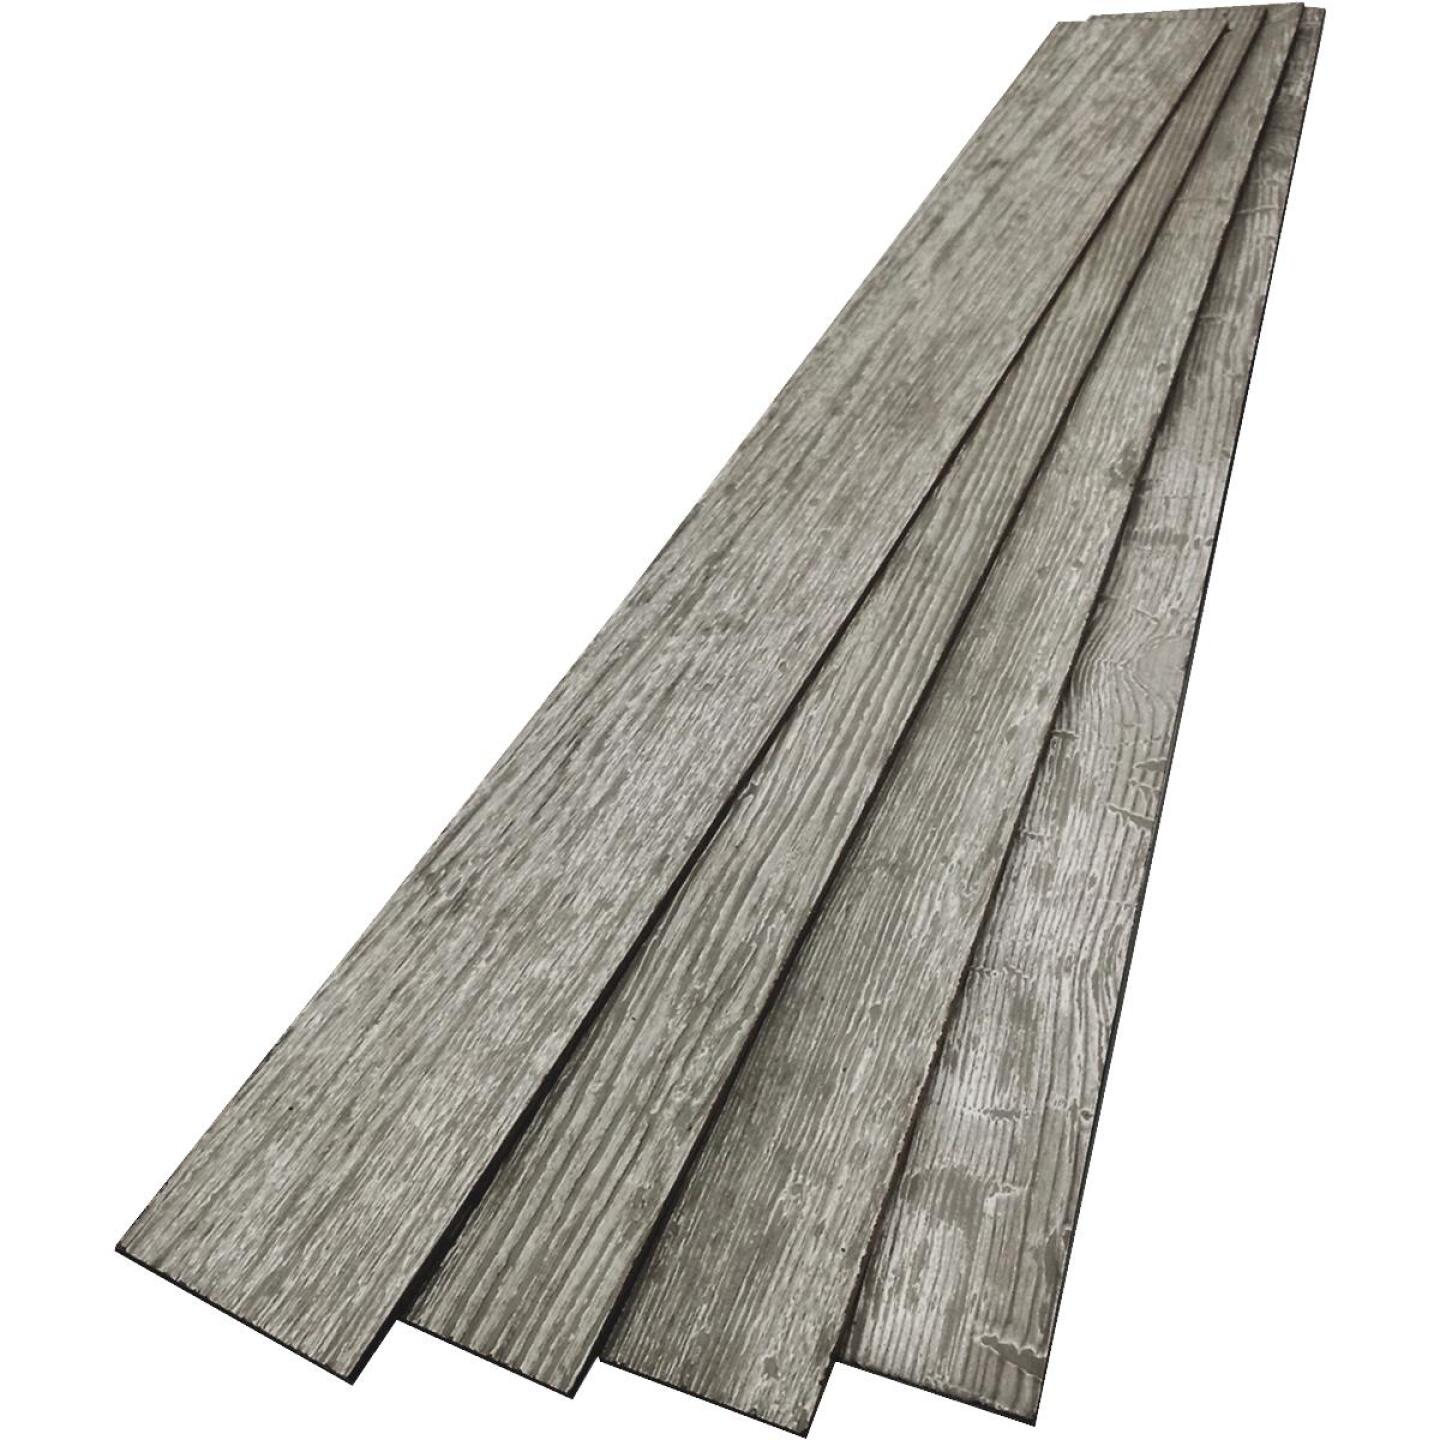 DPI 6 In. W. x 48 In. L. x 1/4 In. Thick Thunder Gray Rustic Wall Plank (12-Pack) Image 2